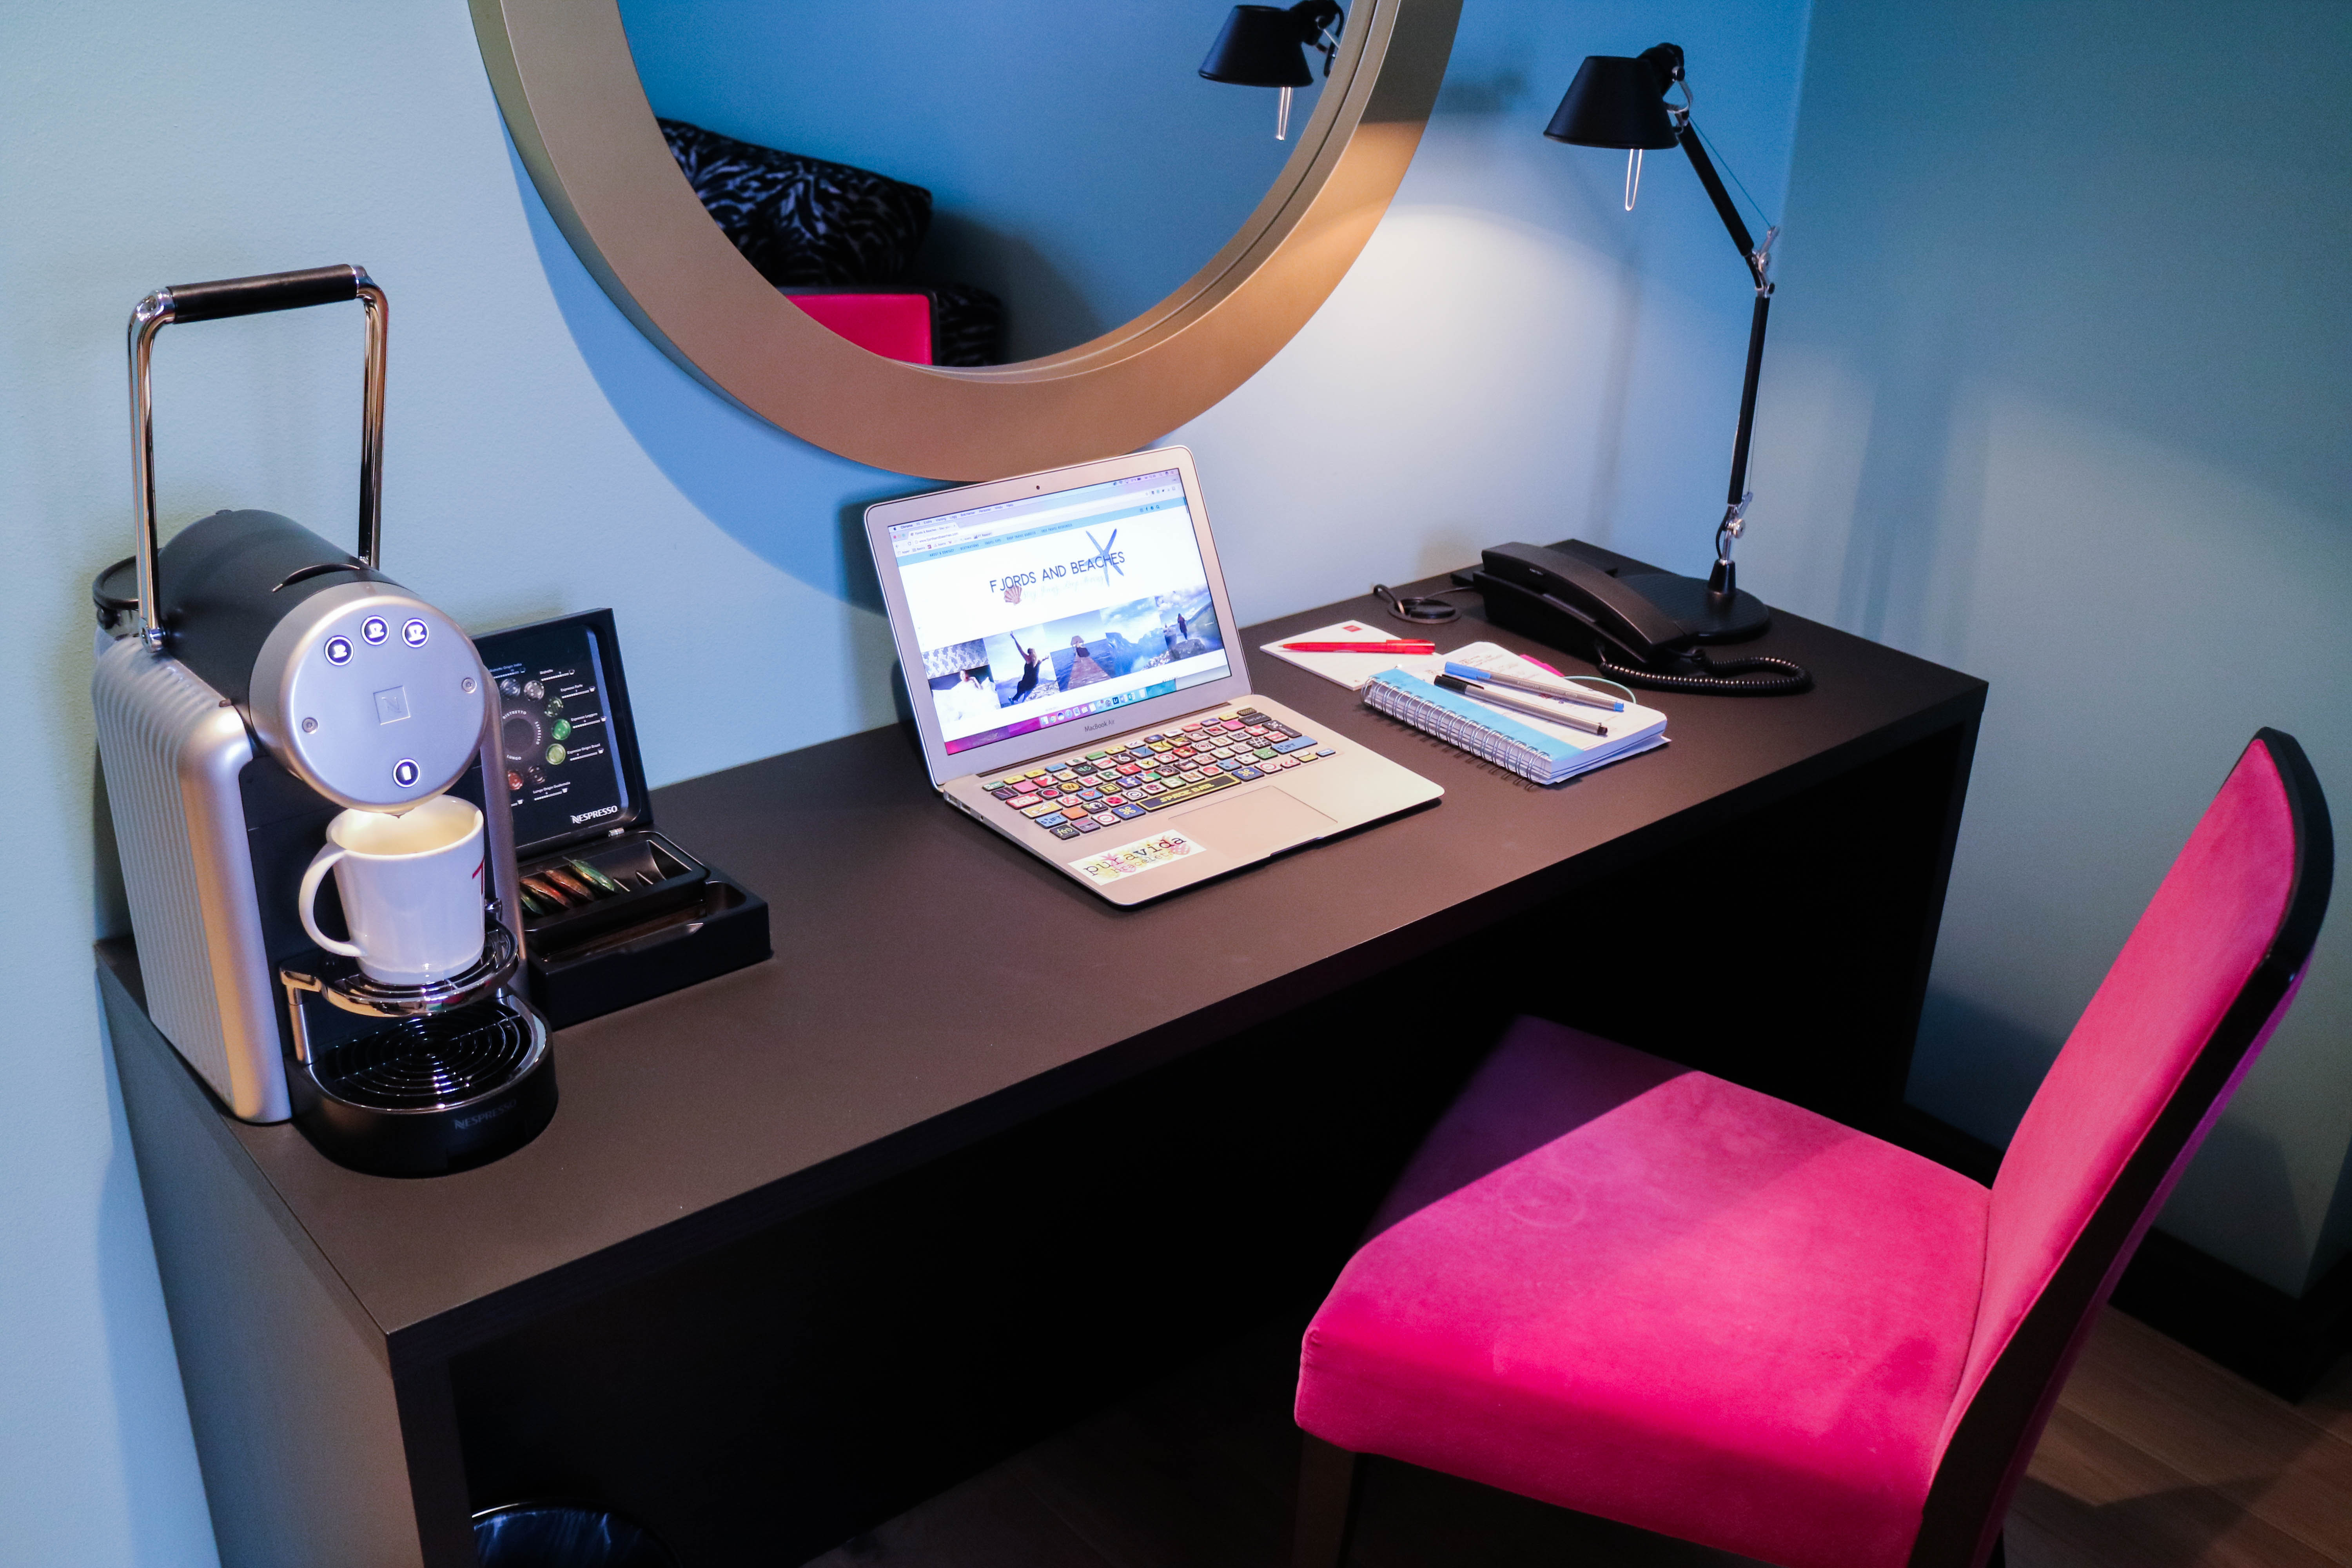 Best hotels in Oslo, thon hotel terminus, love this hotel terminus, oslo hotel, hotels in oslo norway